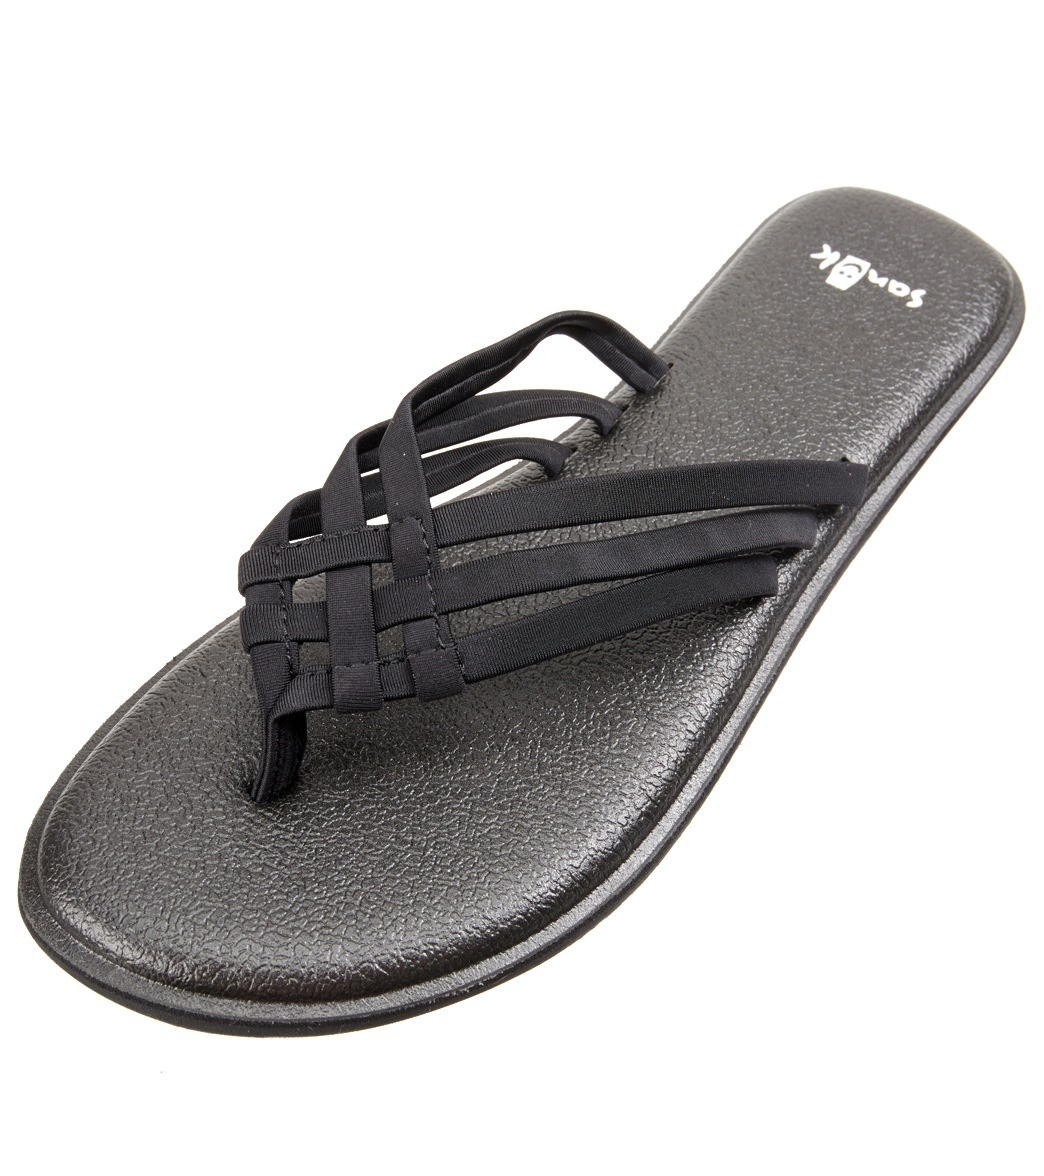 bf19271aefbf7f Sanuk Women s Yoga Salty Flip Flop at SwimOutlet.com